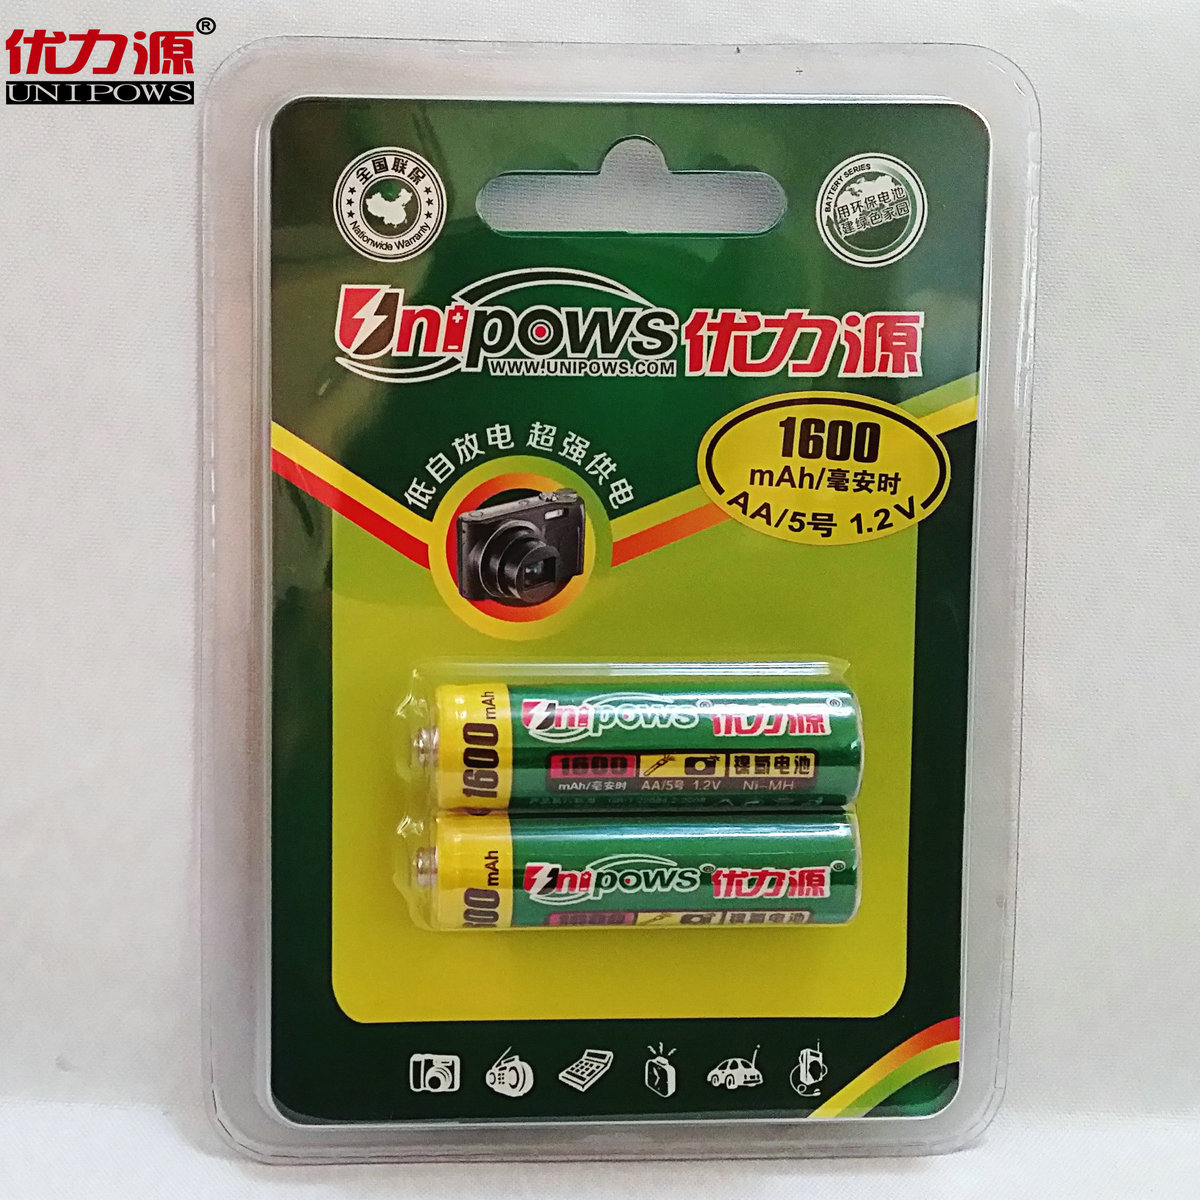 Excellent source of 5 aa1600mah polaroid rechargeable batteries on 5 rechargeable battery wireless mouse battery